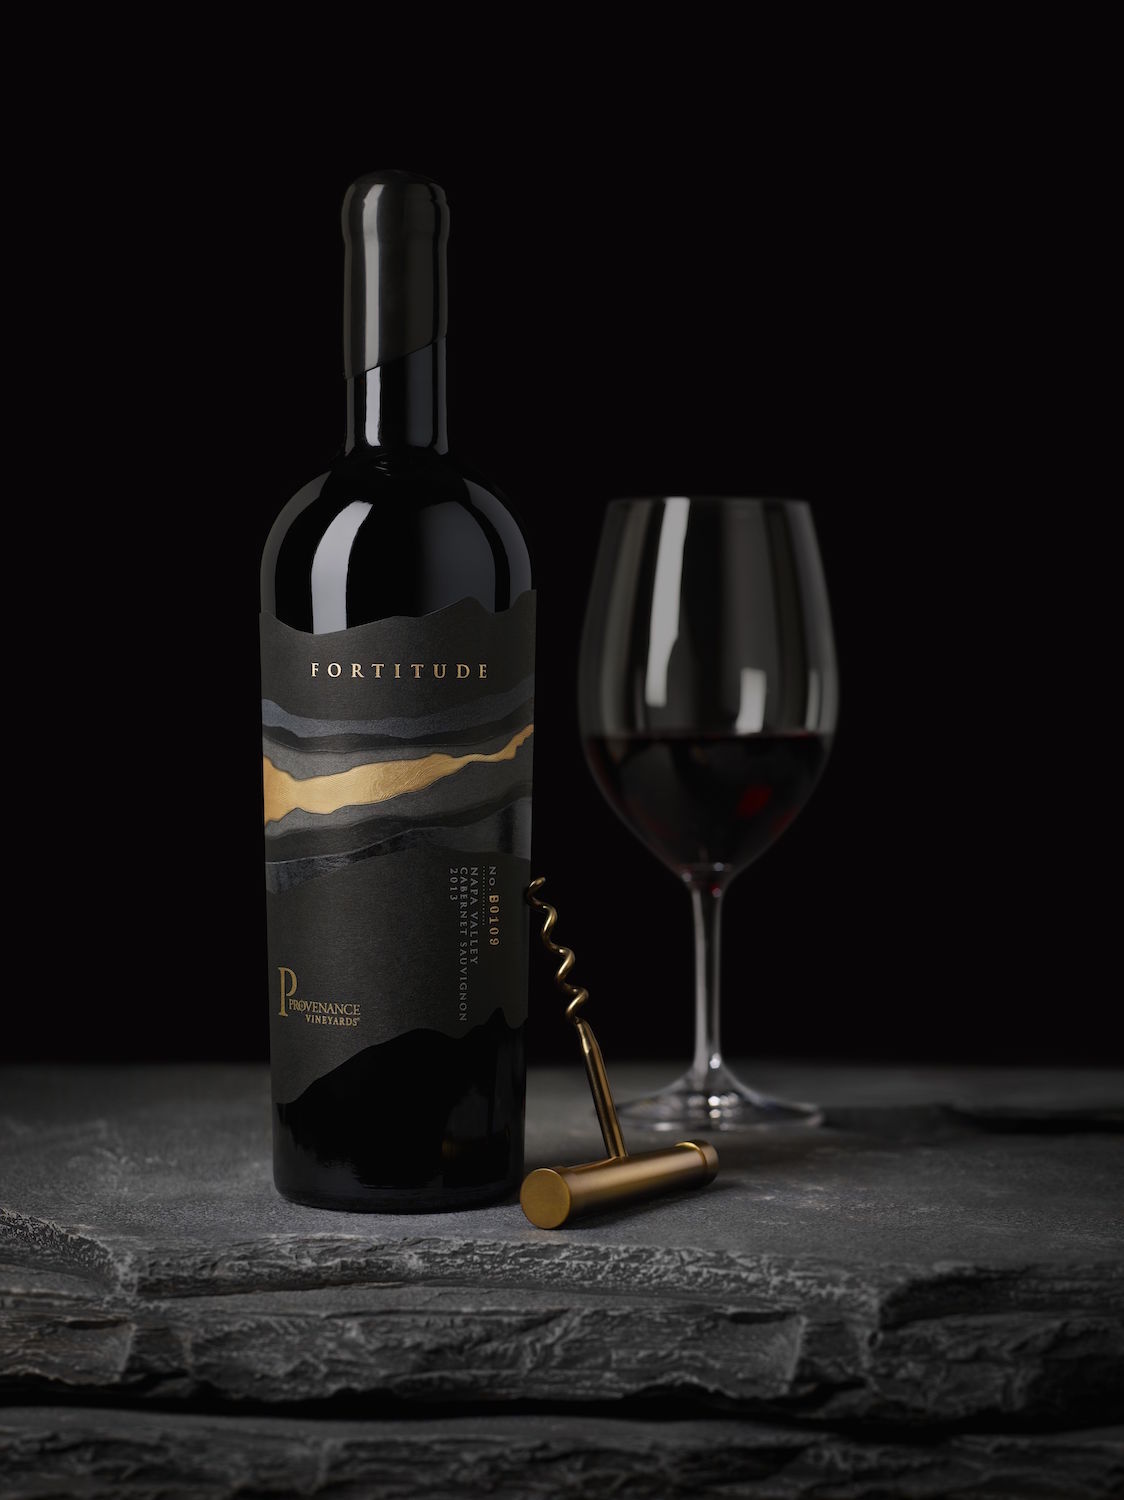 With Fortitude, Provenance Vineyards Releases The Best Expression Of Napa Valley photo